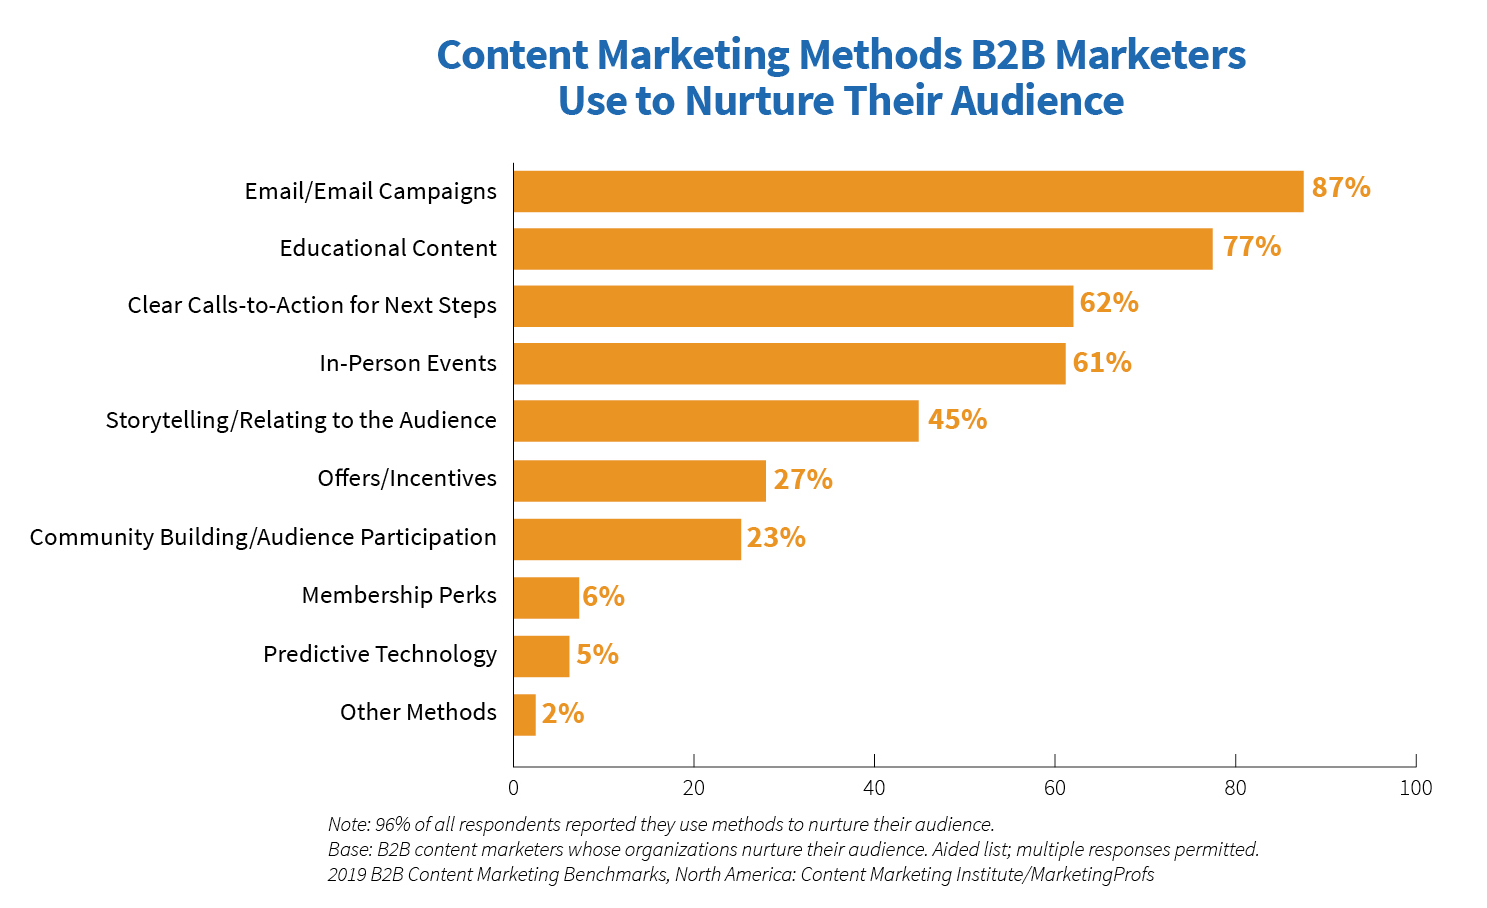 b2b marketers use emails to turn visitors into paying customers